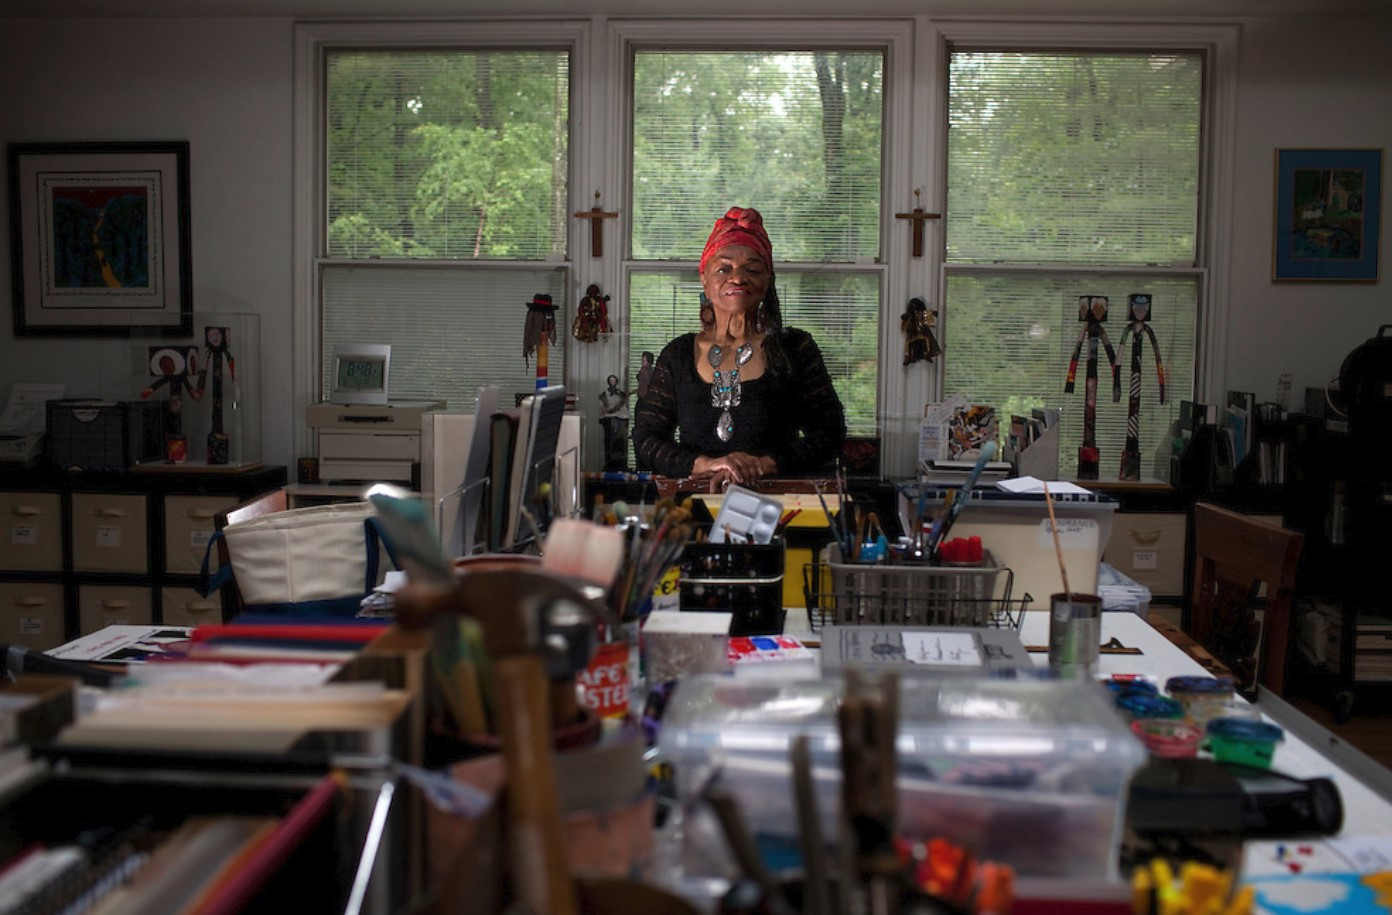 photo: Faith Ringgold in her studio at her home by Melanie Buford/Prime for the Washington Post, 2013 - https://melanieburford.photoshelter.com/image/I0000wx5iDlZrP14